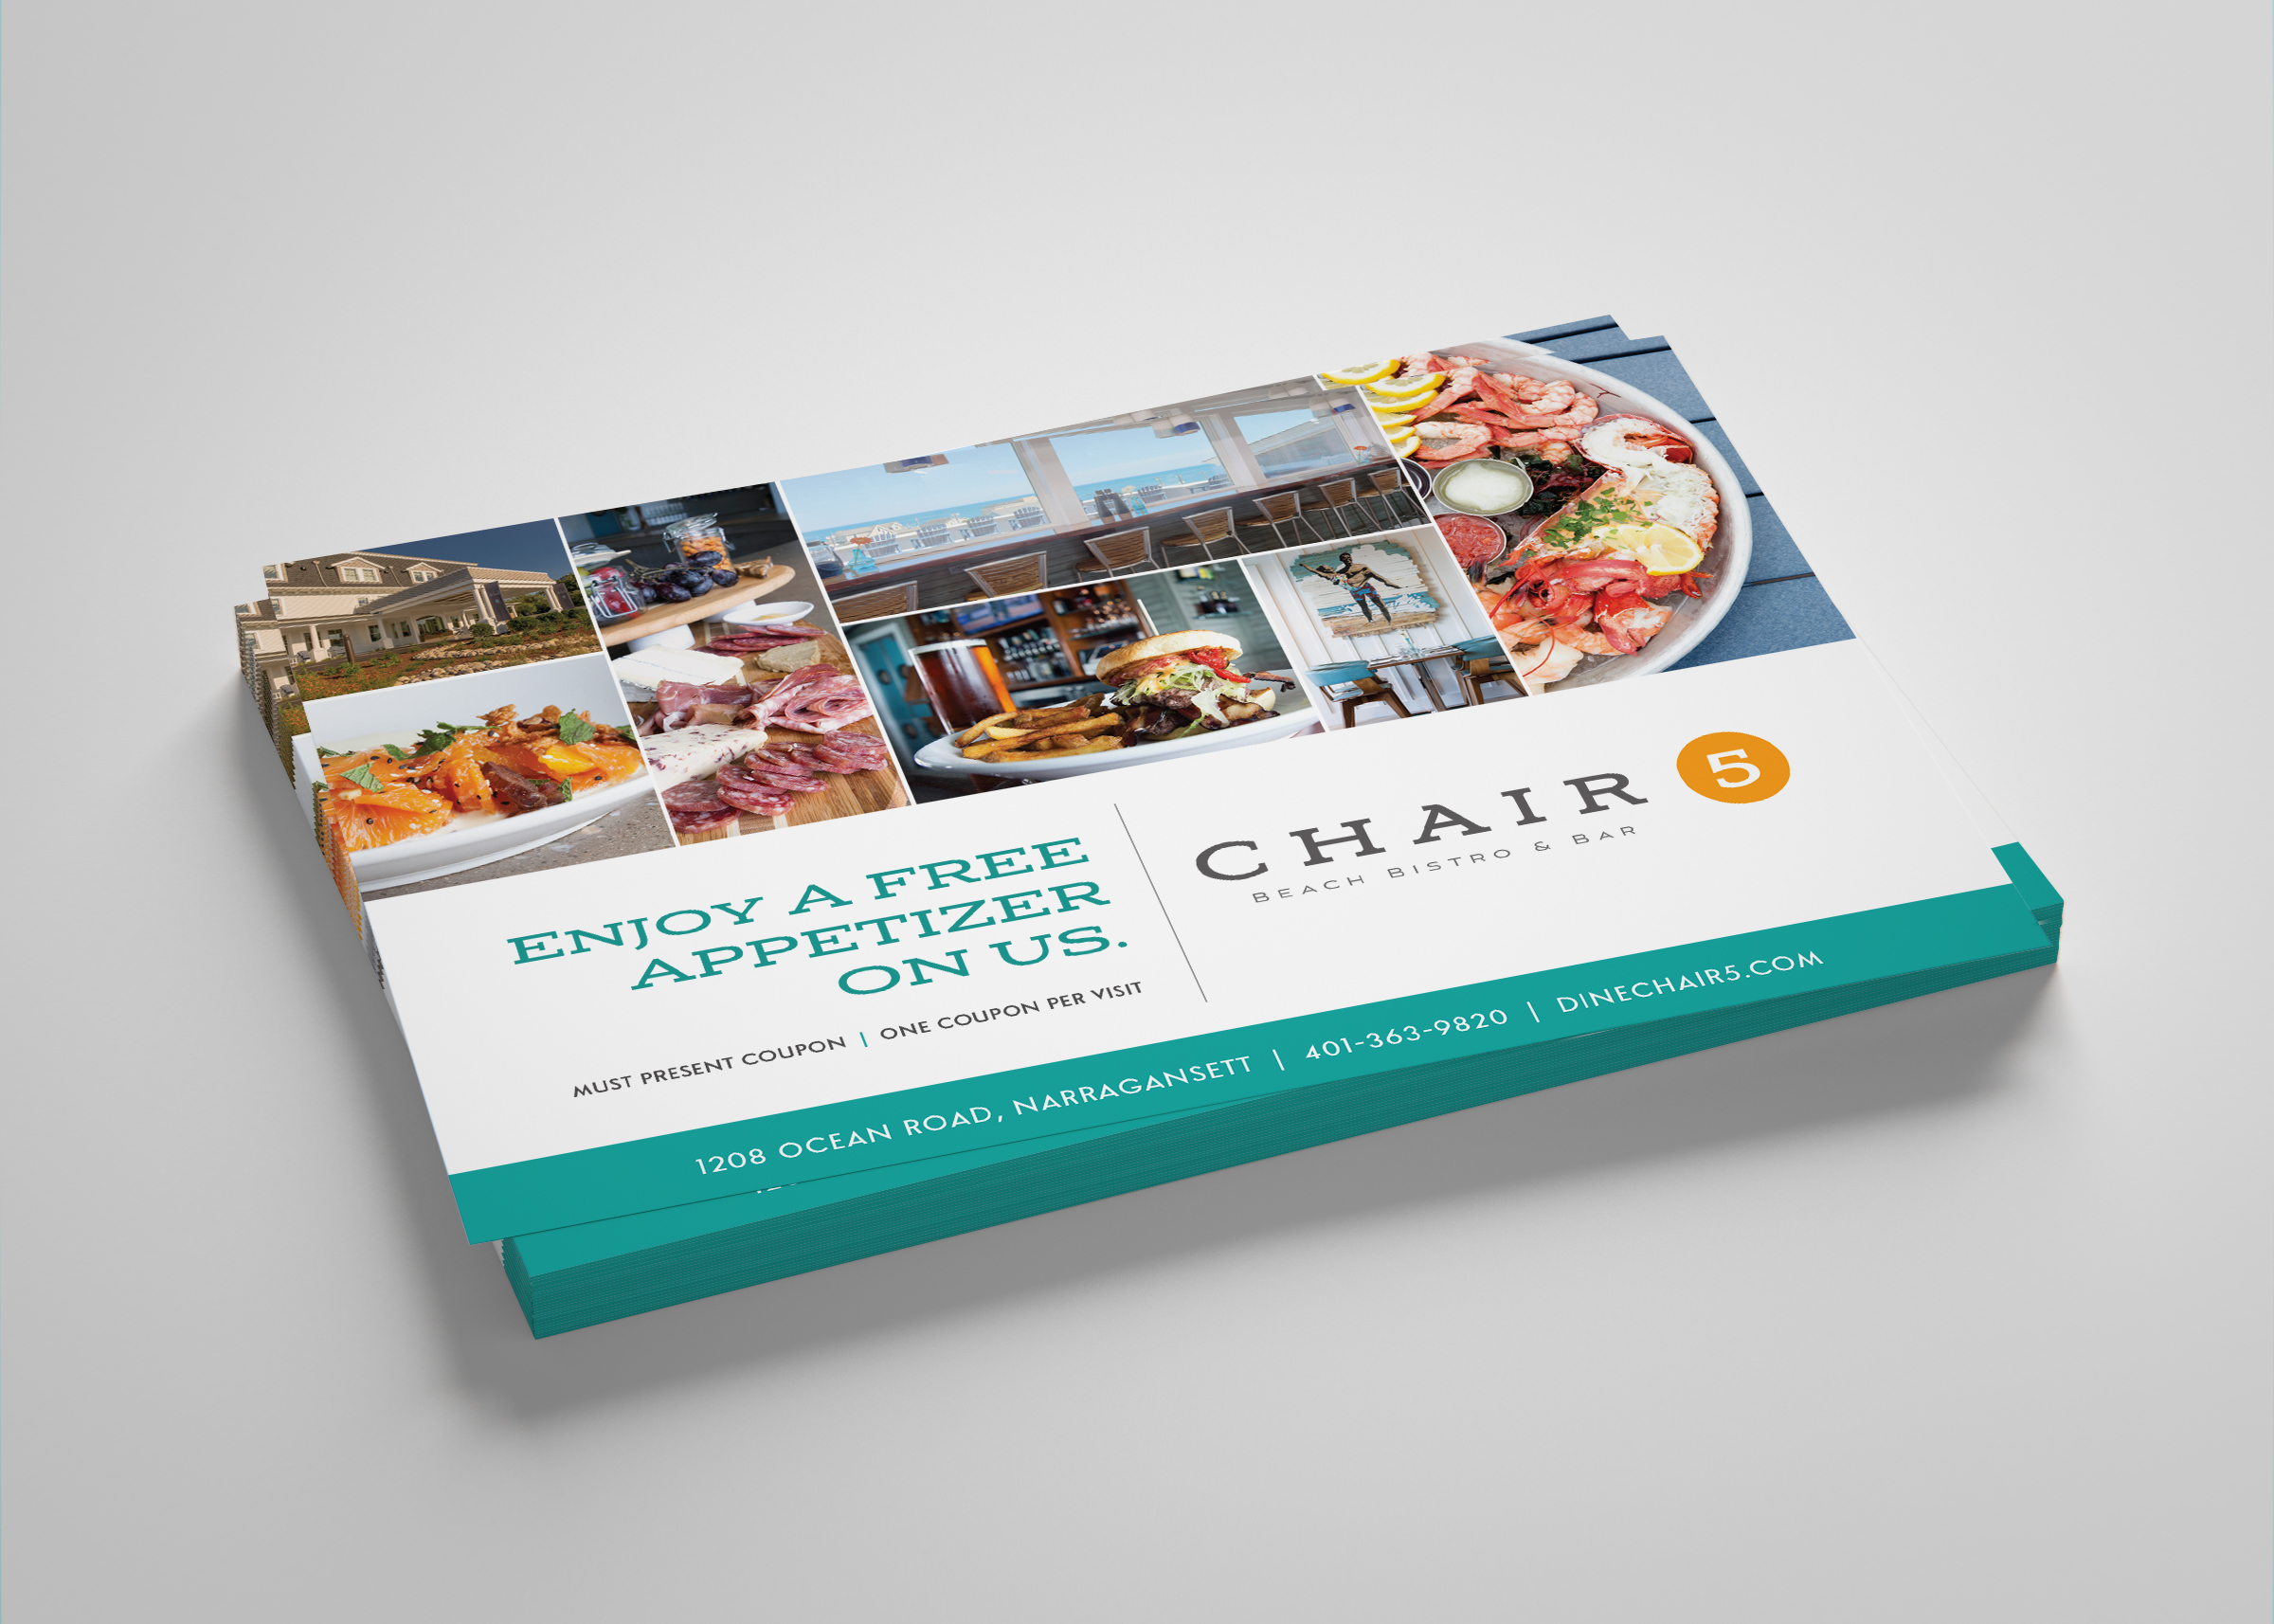 Chair 5 Free App Card.jpg